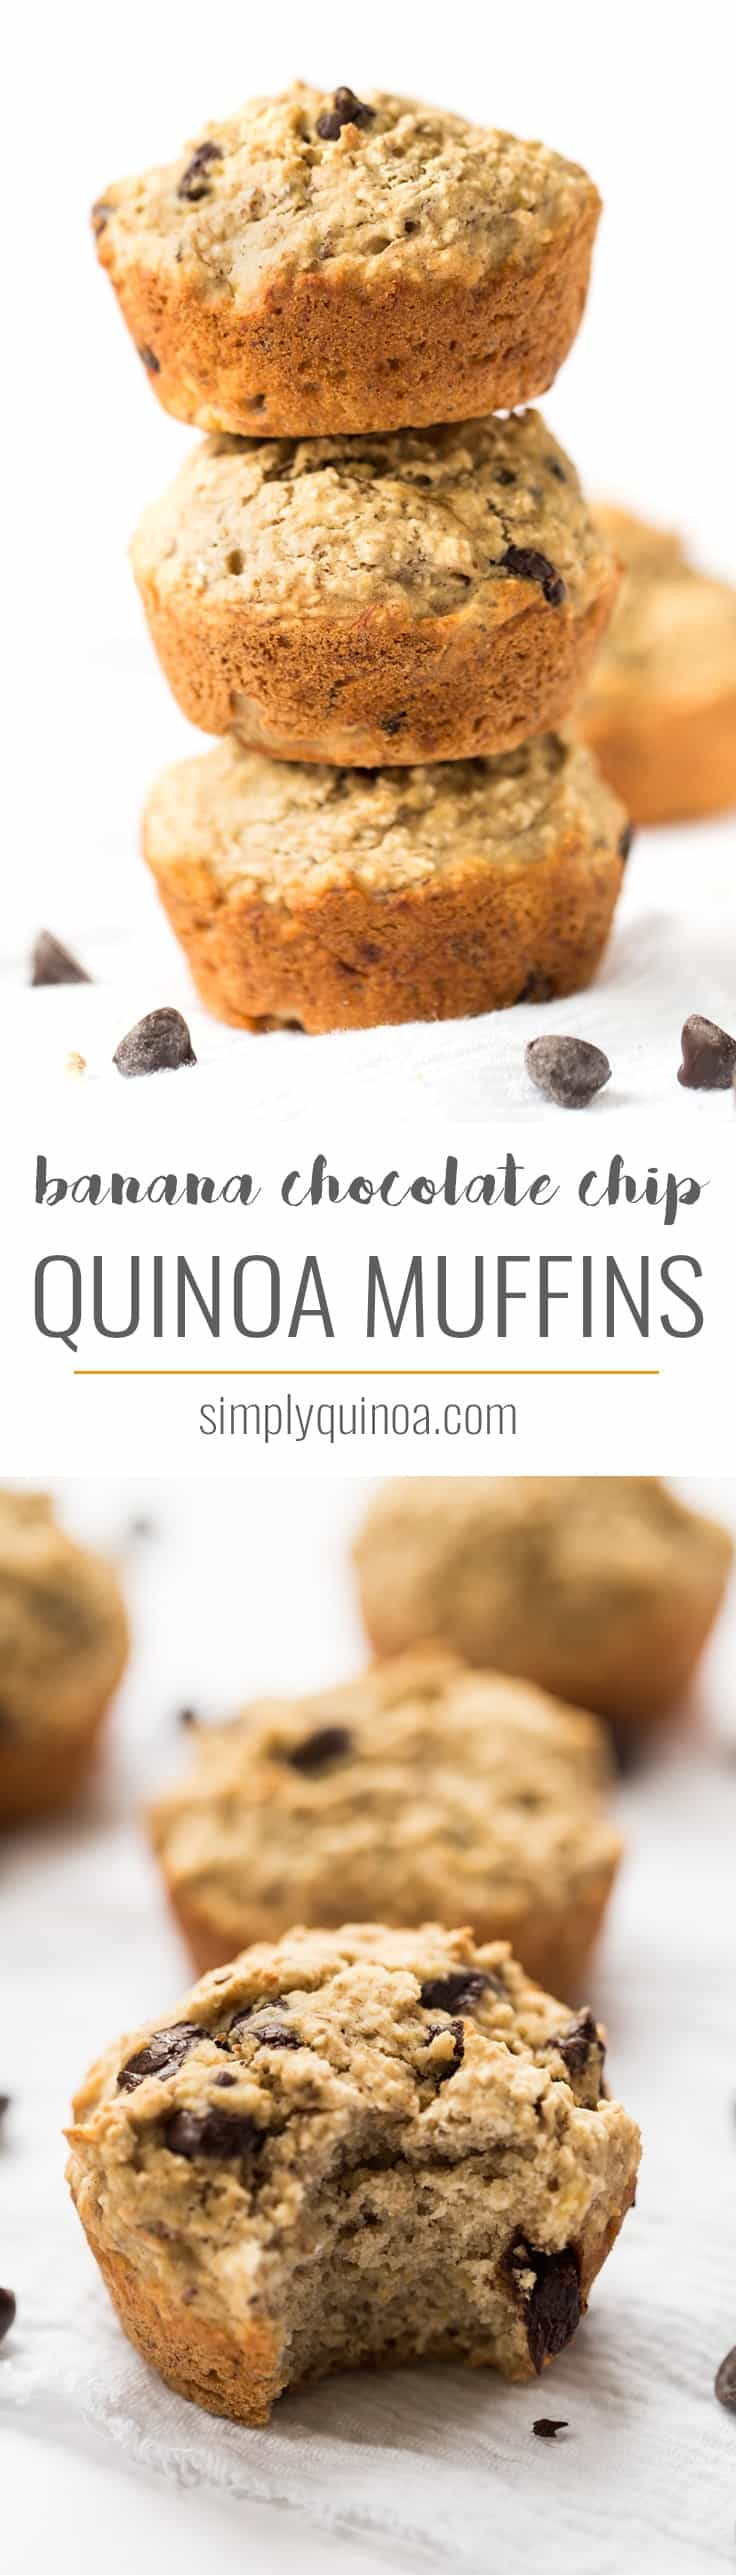 Perfectly soft and tender, these skinny banana chocolate chip muffins are naturally gluten-free and vegan, studded with dark chocolate chips and sweetened with banana!